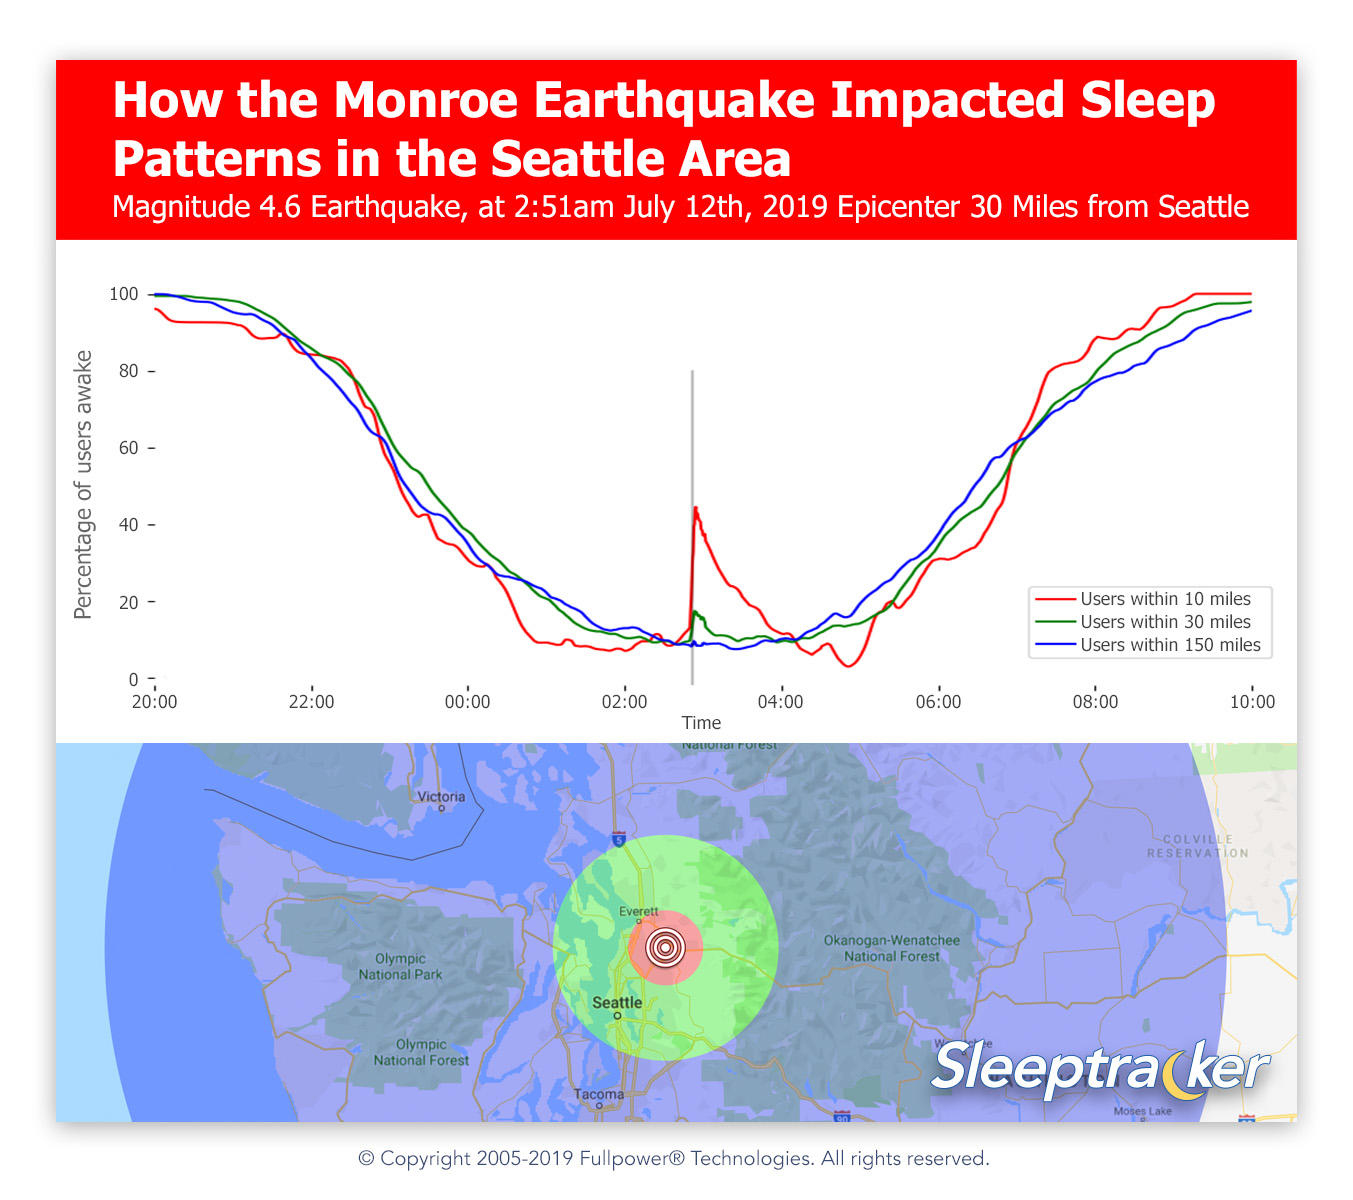 How the Monroe Earthquake Impacted Sleep Patterns in the Seattle Area